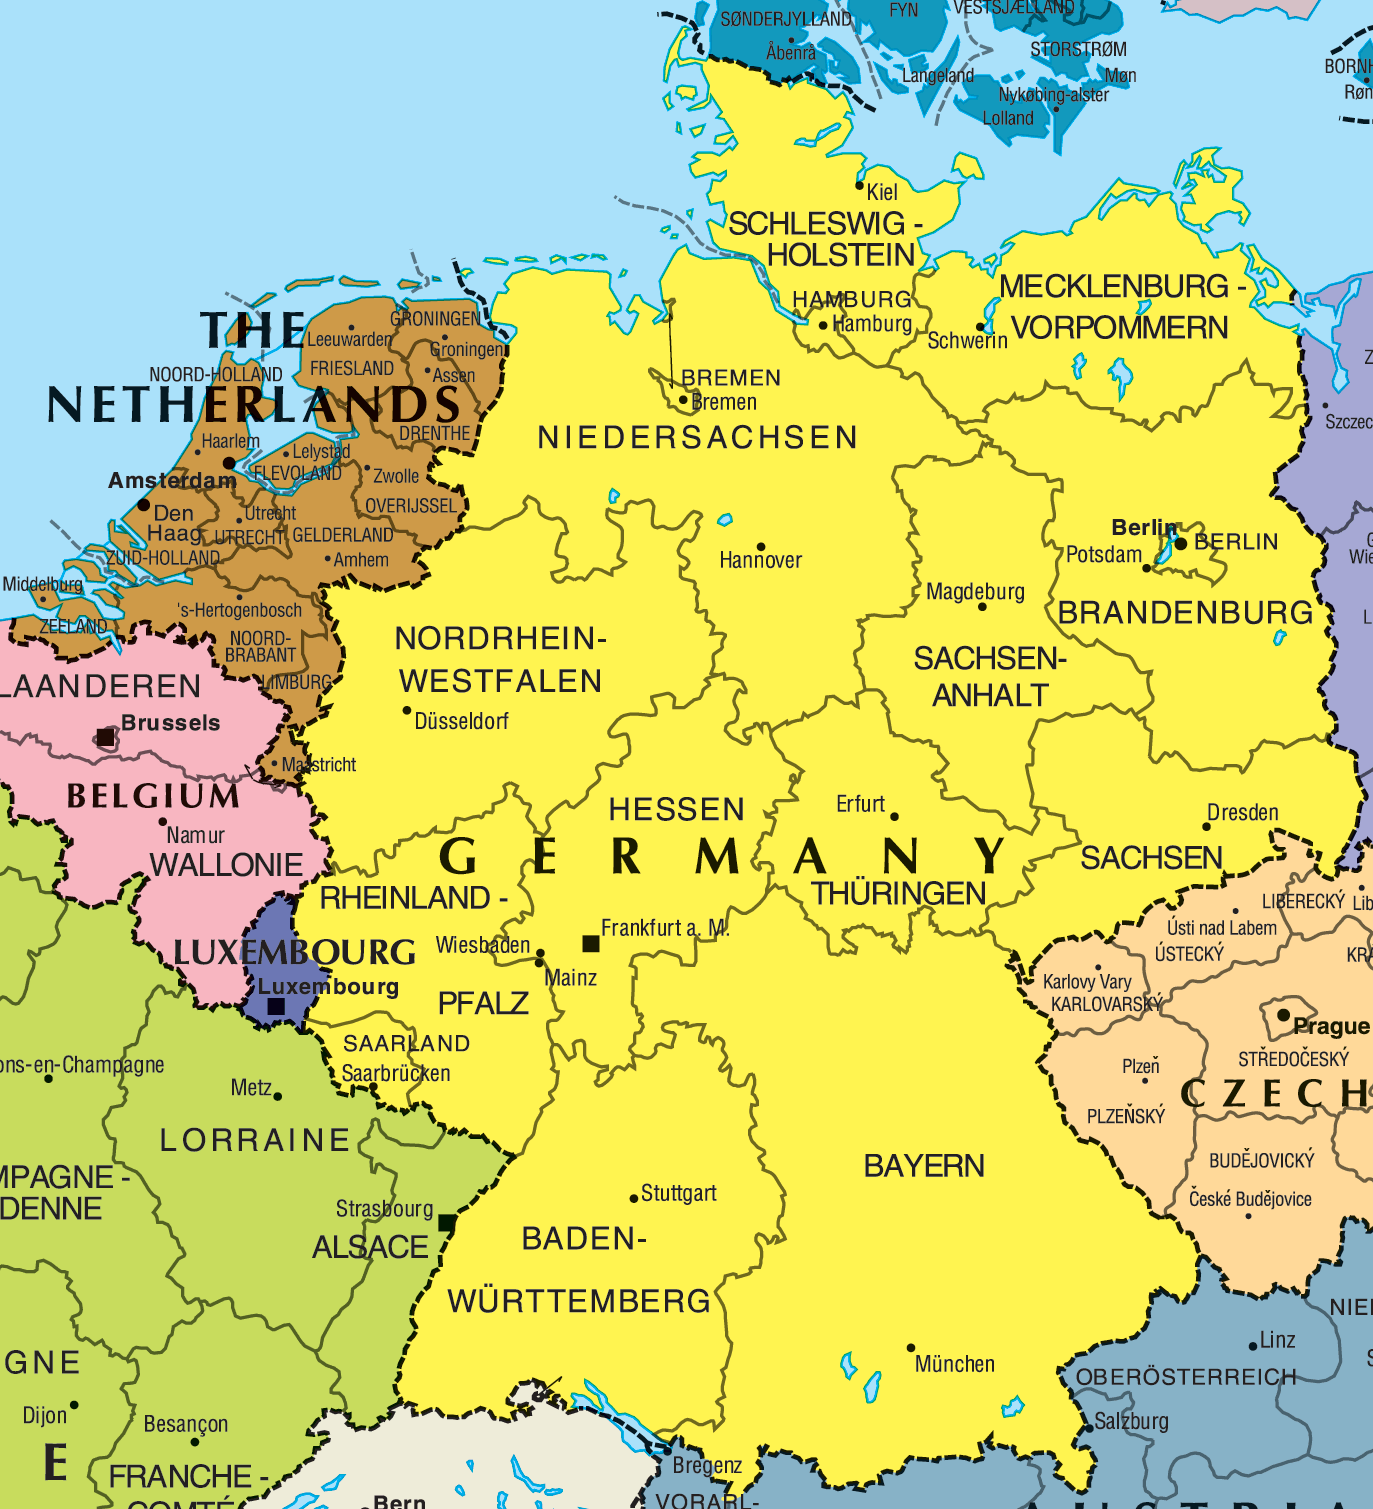 Map Of The Netherlands And Germany.Germany And Netherlands Map Mapsof Net